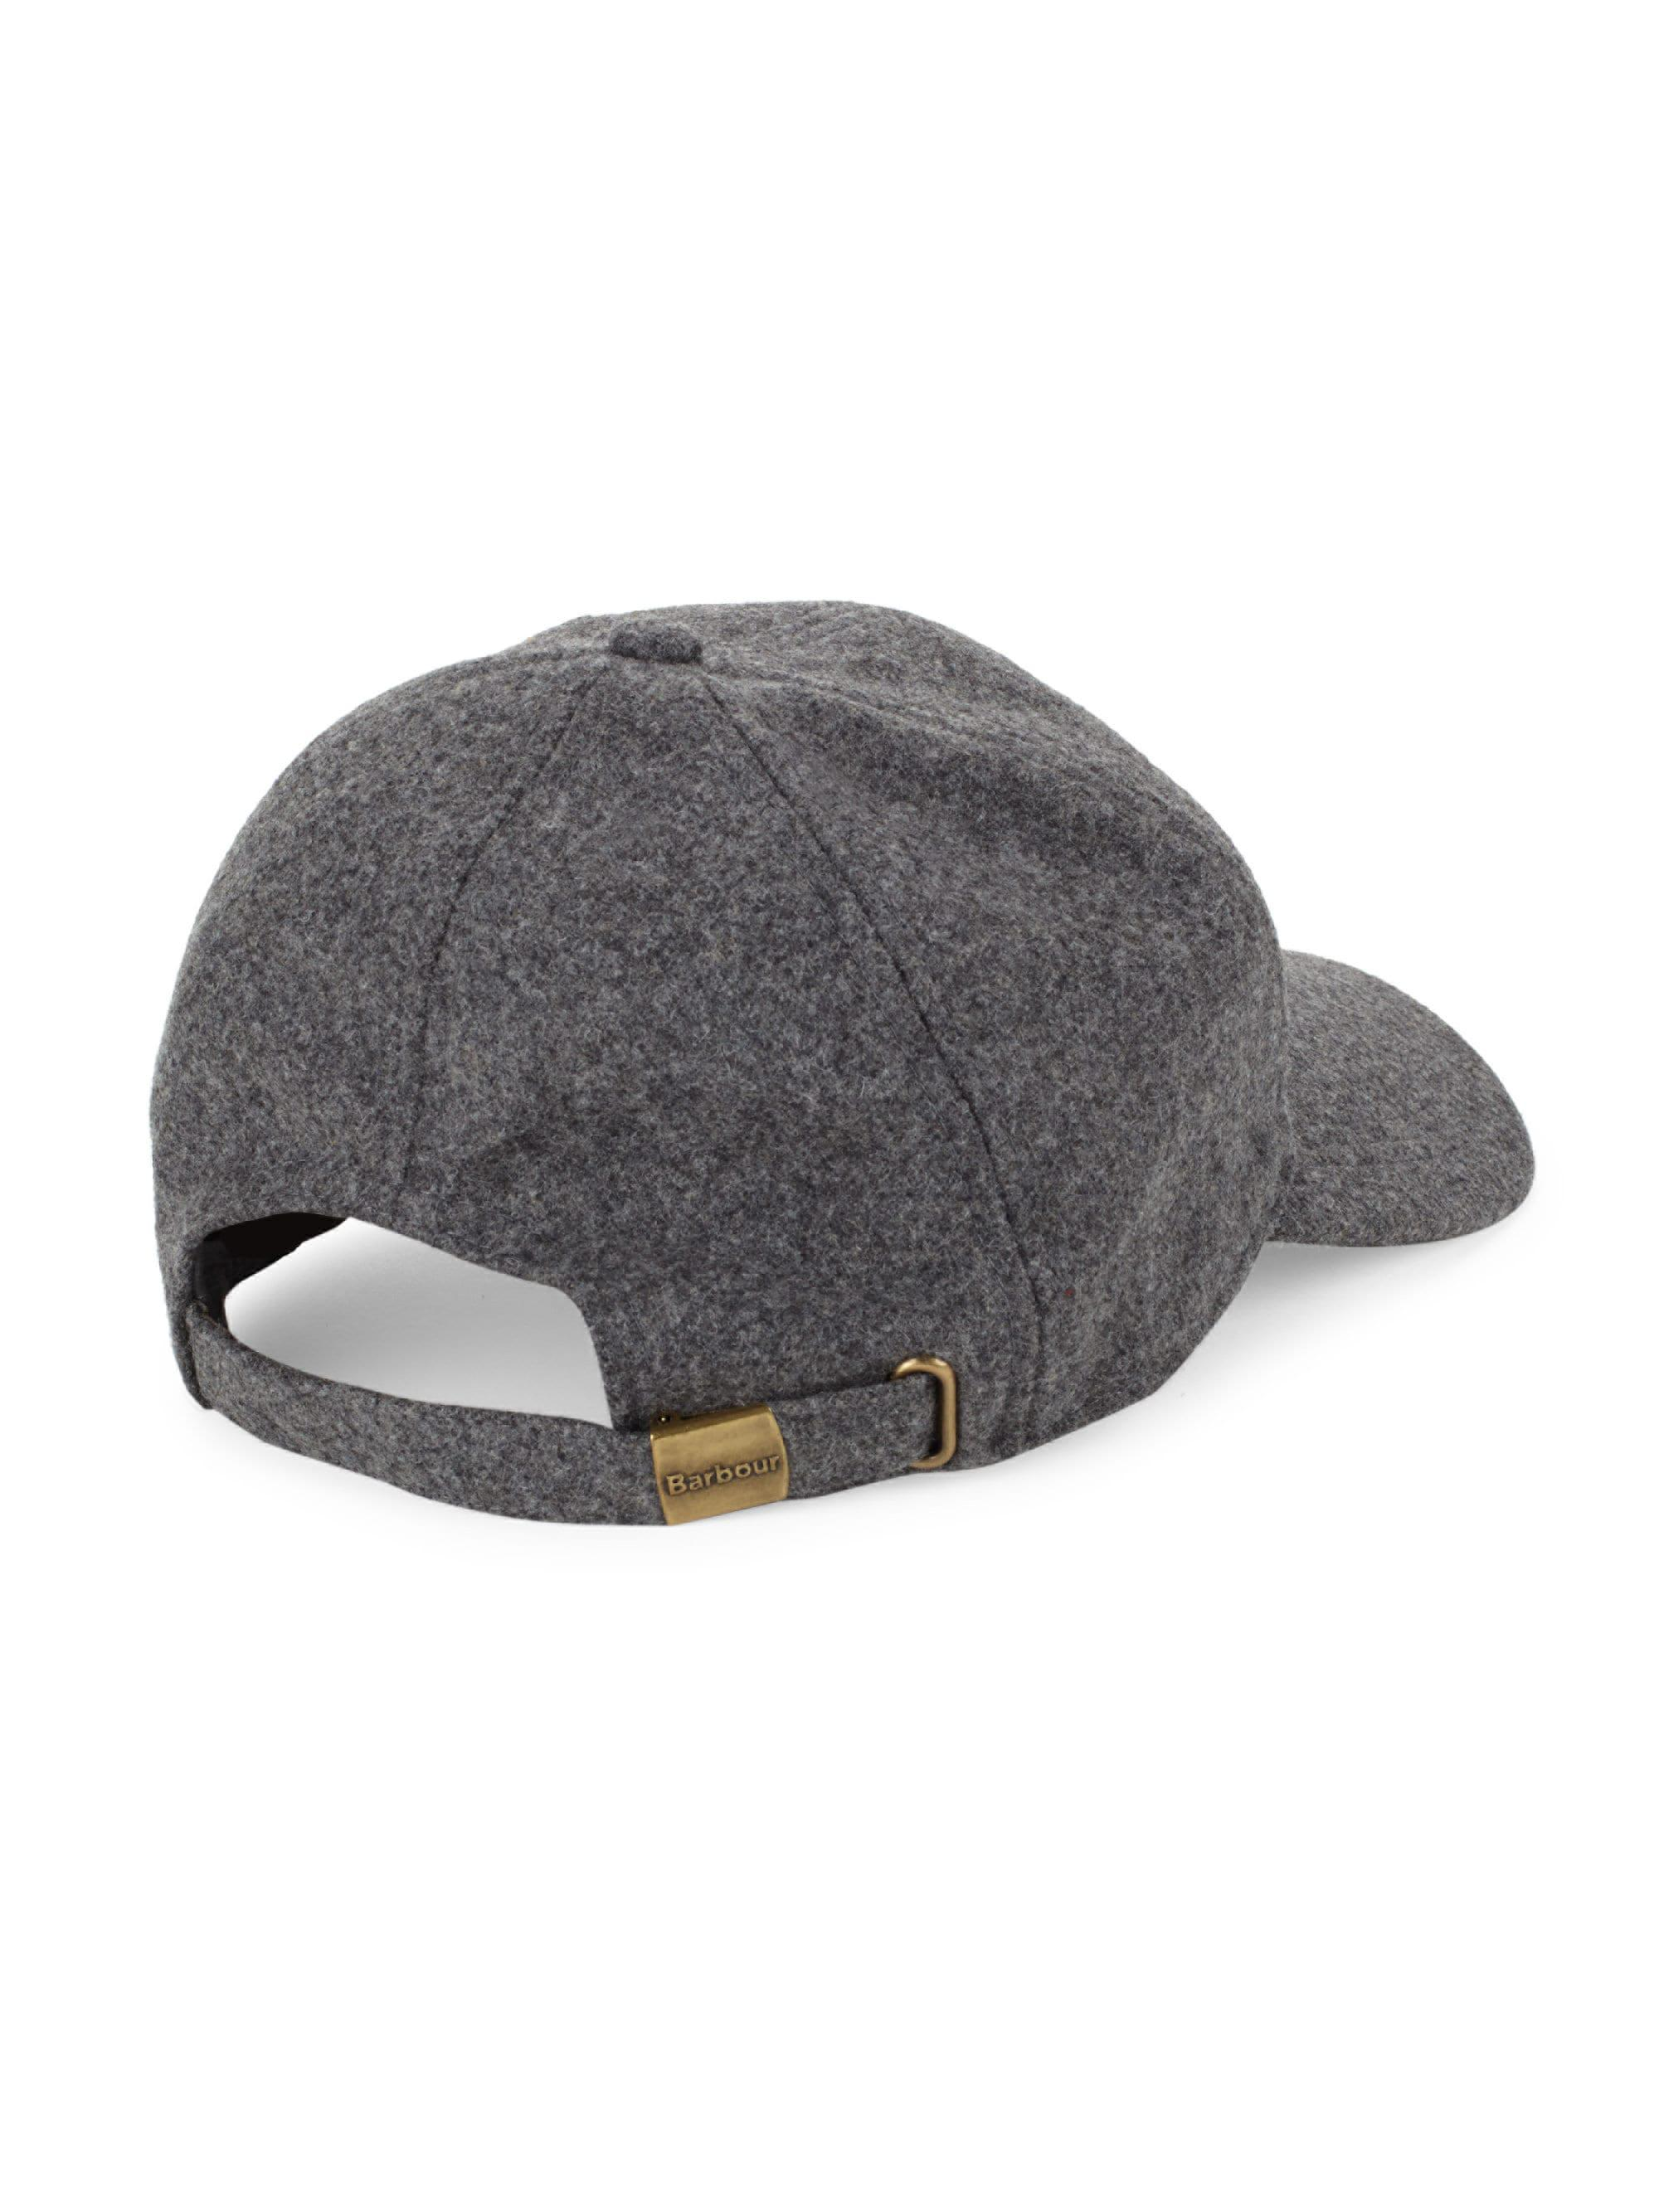 902f7a106df Barbour - Gray Coopworth Wool-blend Sports Cap for Men - Lyst. View  fullscreen